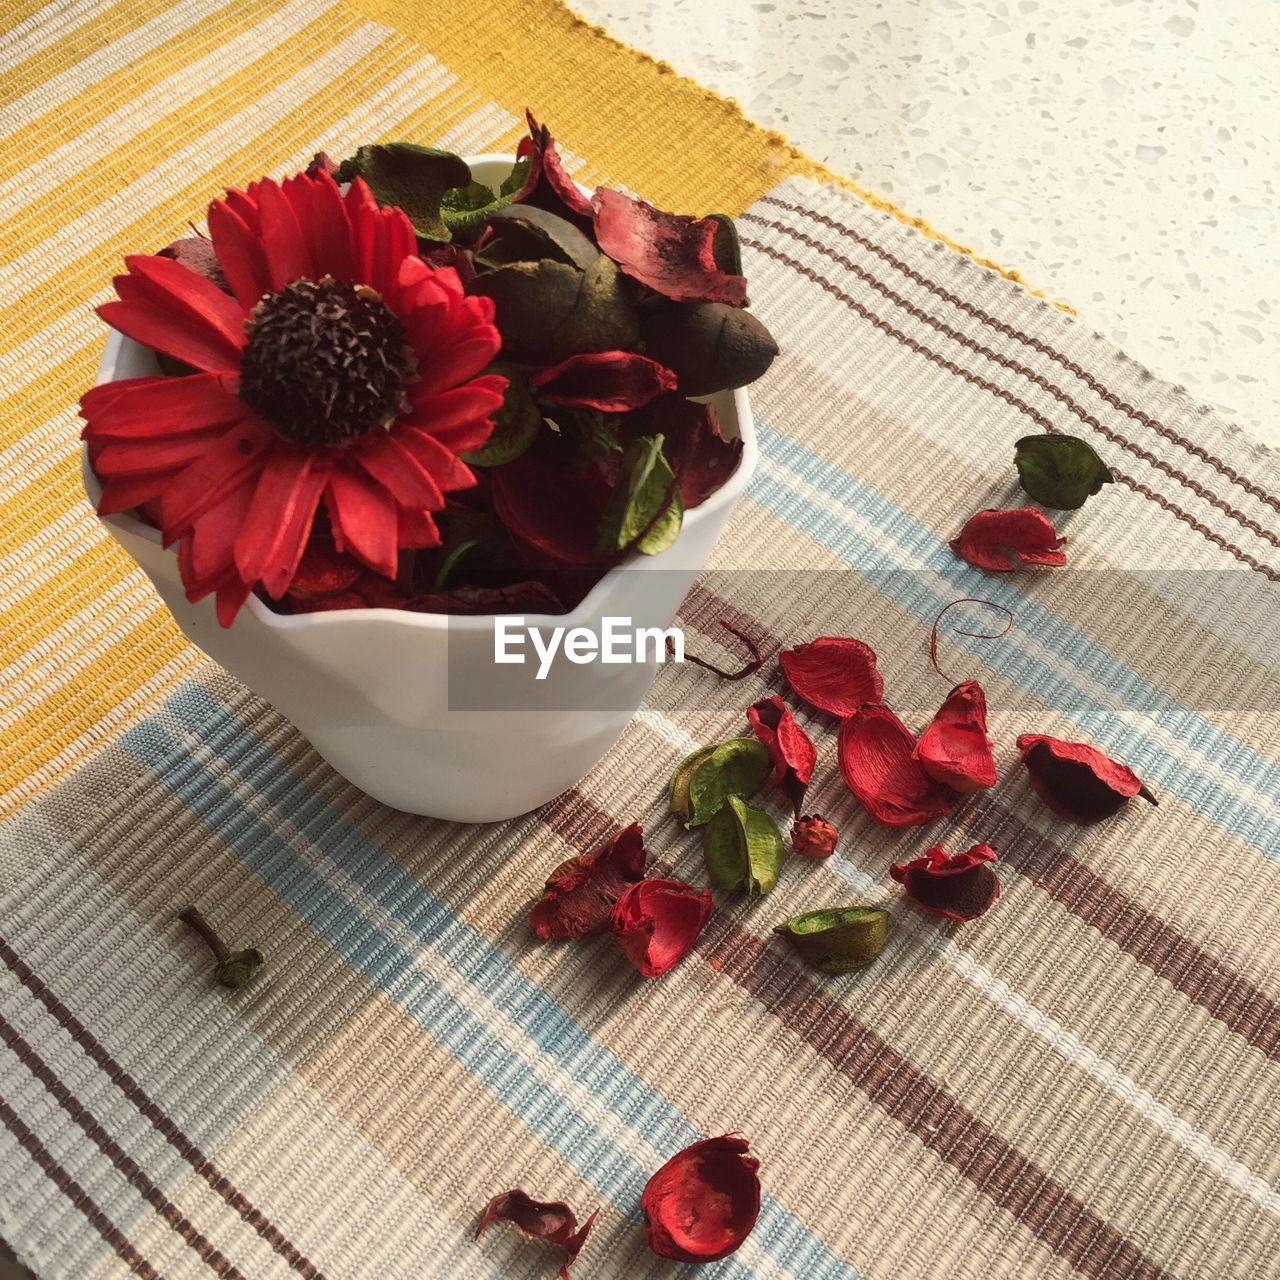 flower, flowering plant, plant, freshness, beauty in nature, petal, nature, table, food and drink, flower head, indoors, high angle view, red, no people, close-up, food, fragility, rose - flower, inflorescence, vulnerability, place mat, flower arrangement